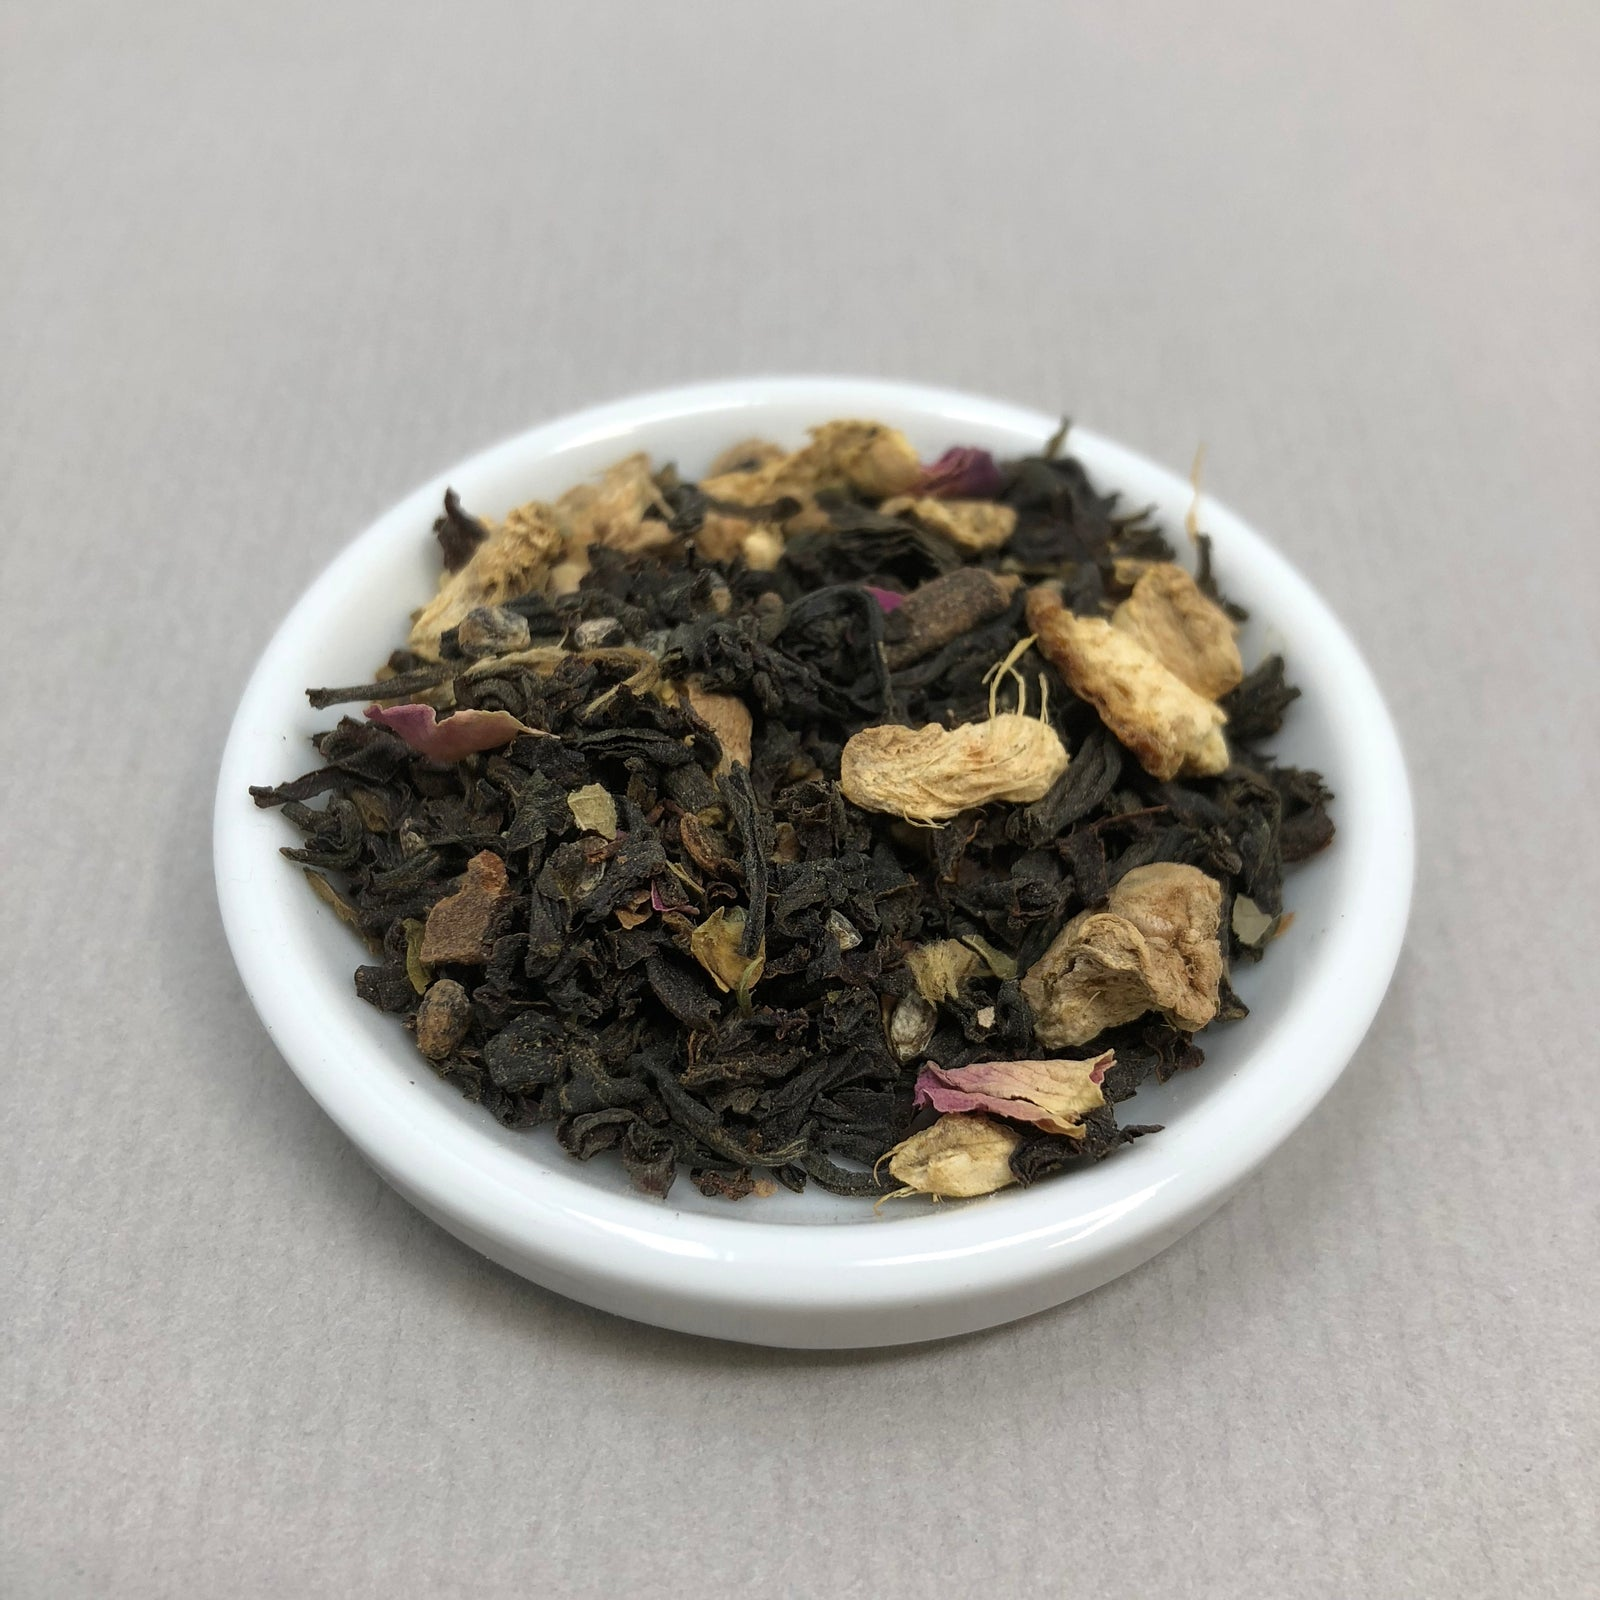 Shibui Tea | Edinburgh Tea Specialists | Loose Leaf Tea